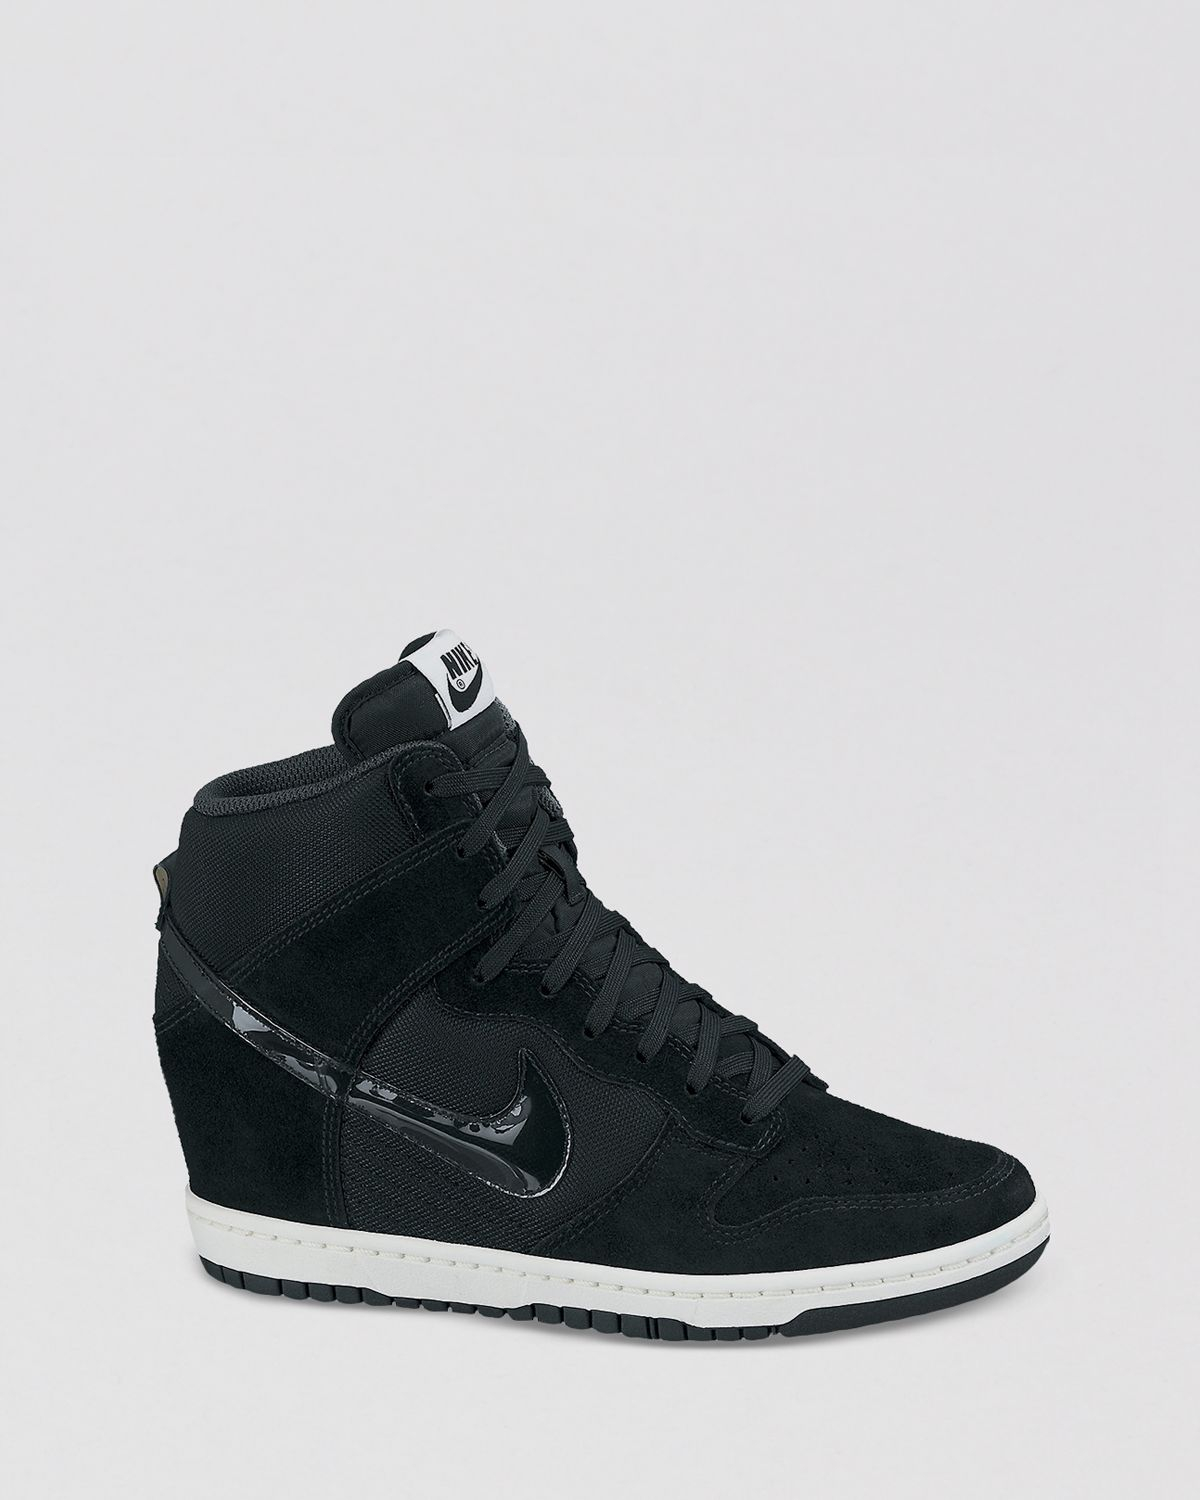 9e0144bb1c69 ... buy gallery. previously sold at bloomingdales womens wedge sneakers  womens nike dunk womens nike dunk